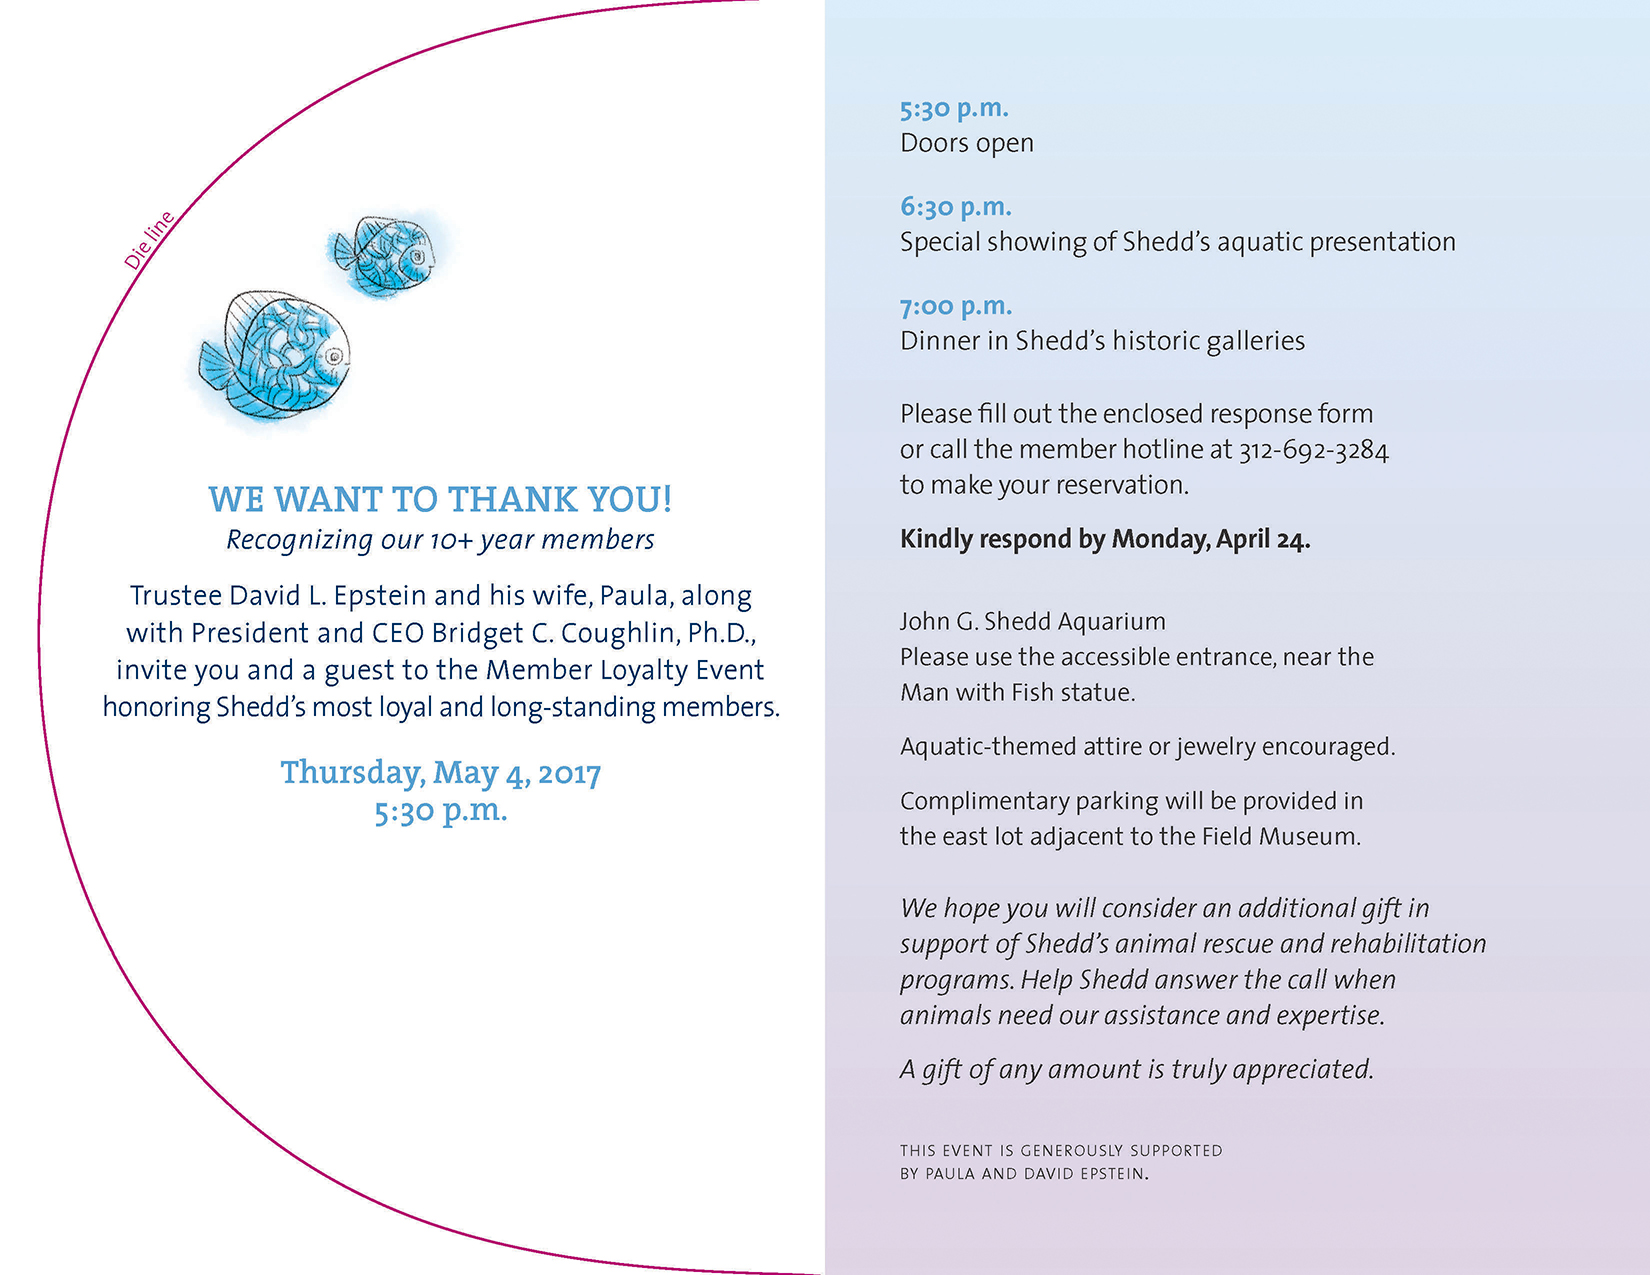 The inside spread of an invitation. On the left two little fish are shown above a headline reading 'We want to thank you!'. On the right information about the event is shown over a gentle blue-to-lavender gradient.